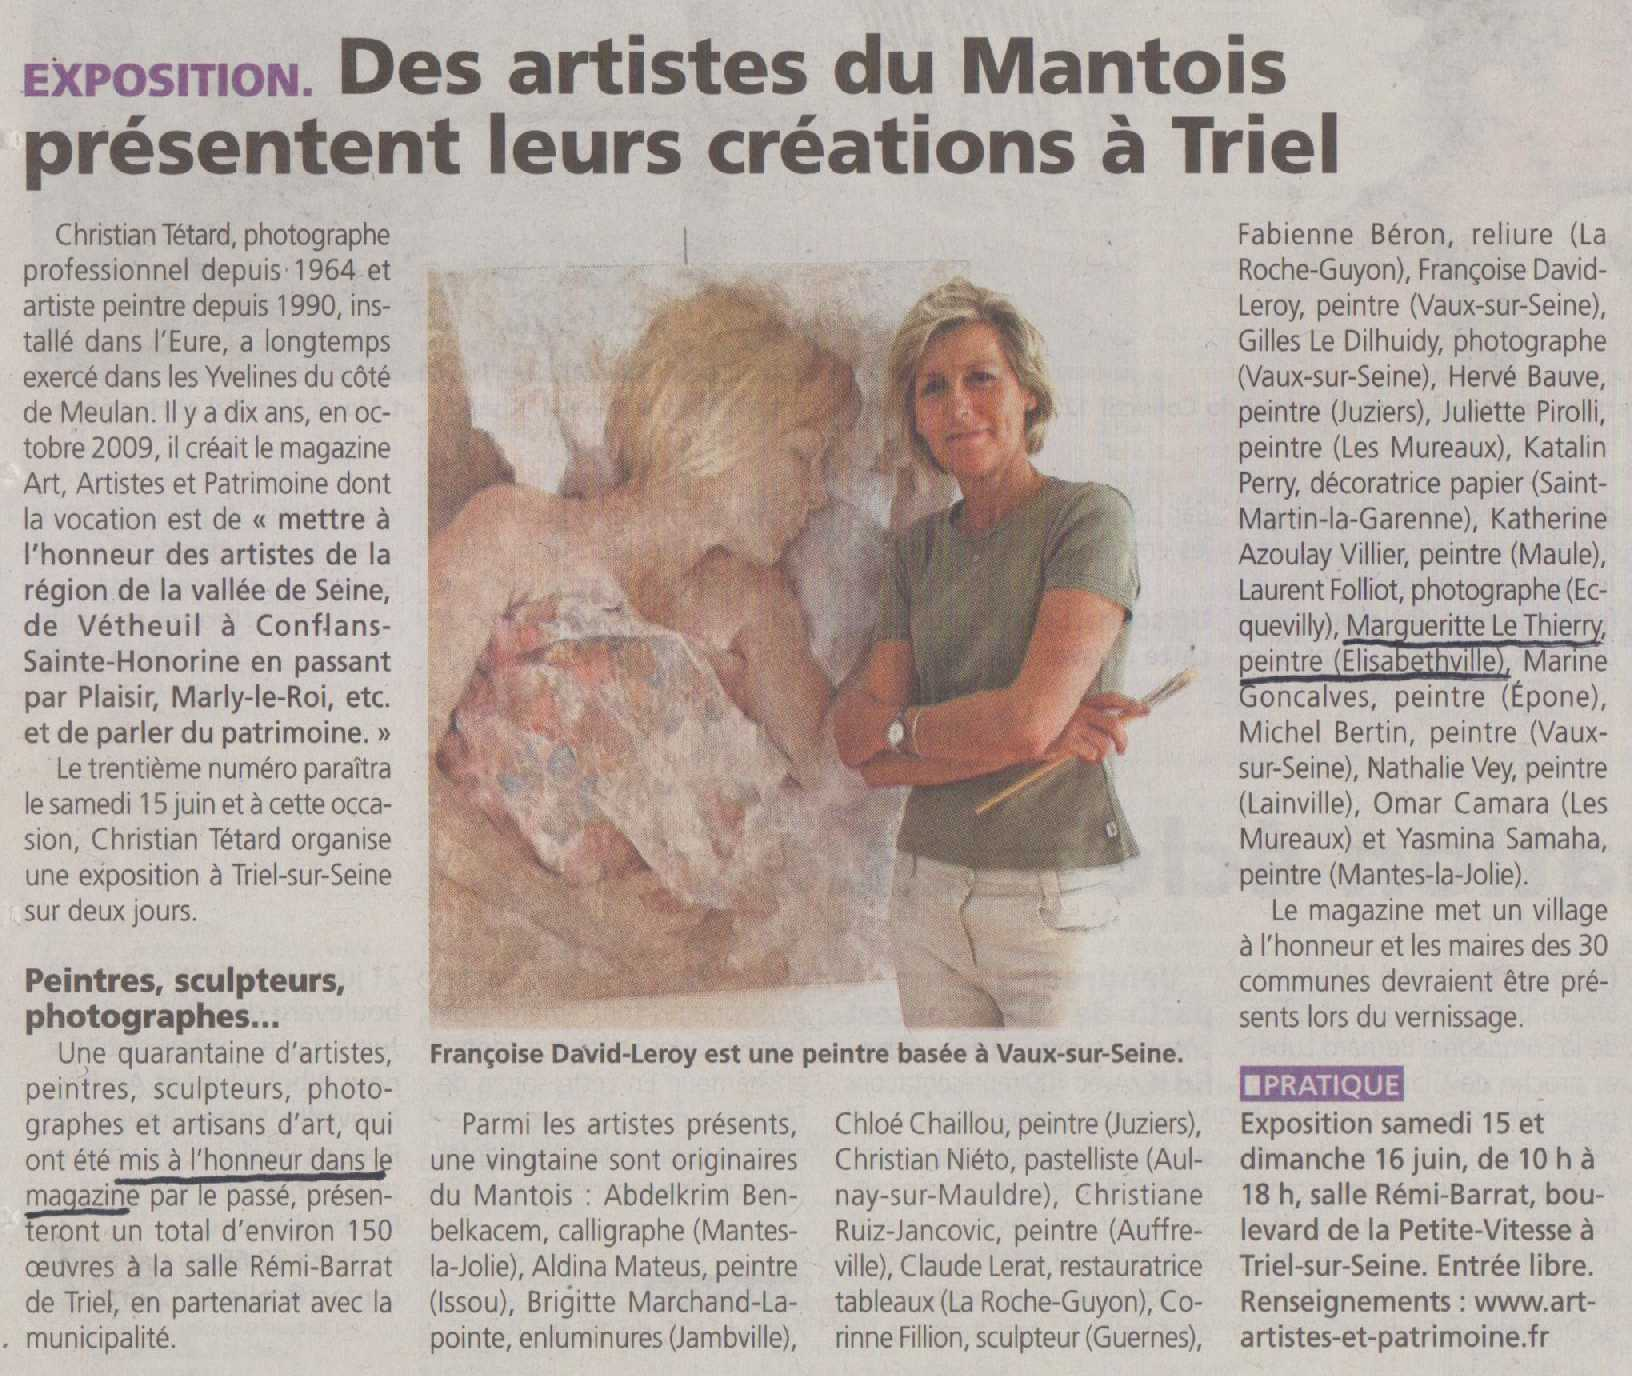 article-triel-mantois-artistes-2019